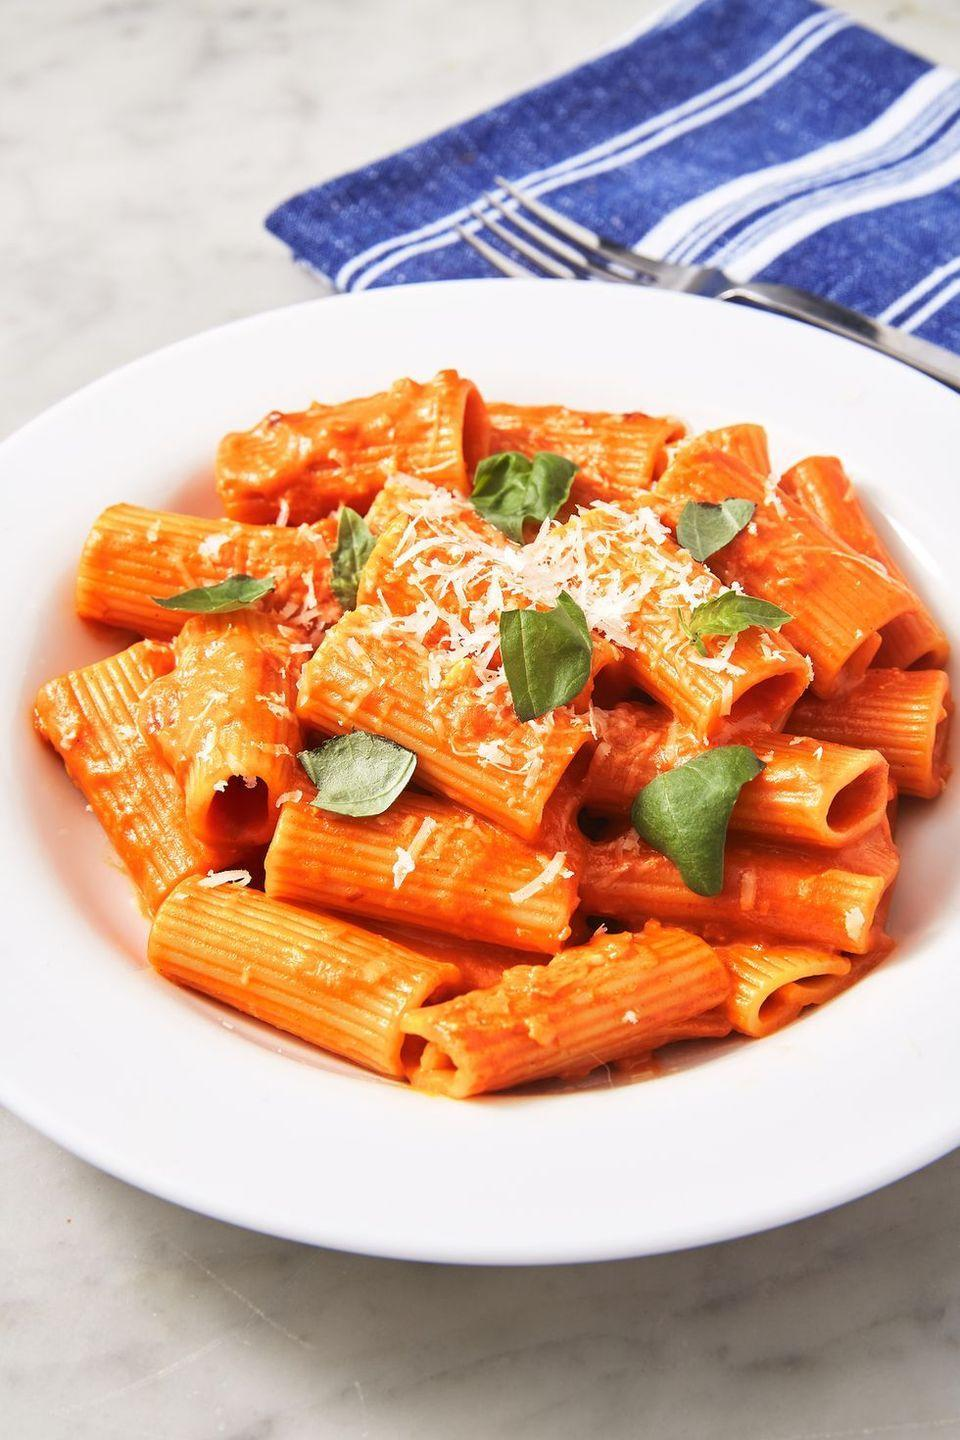 """<p>True story: This is the best vodka sauce any of us in the test kitchen have ever had. It's creamy but bright. The secret: tomato paste.</p><p>Get the <a href=""""https://www.delish.com/uk/cooking/recipes/a30439232/penne-alla-vodka-recipe/"""" rel=""""nofollow noopener"""" target=""""_blank"""" data-ylk=""""slk:Penna Alla Vodka"""" class=""""link rapid-noclick-resp"""">Penna Alla Vodka</a> recipe.</p>"""